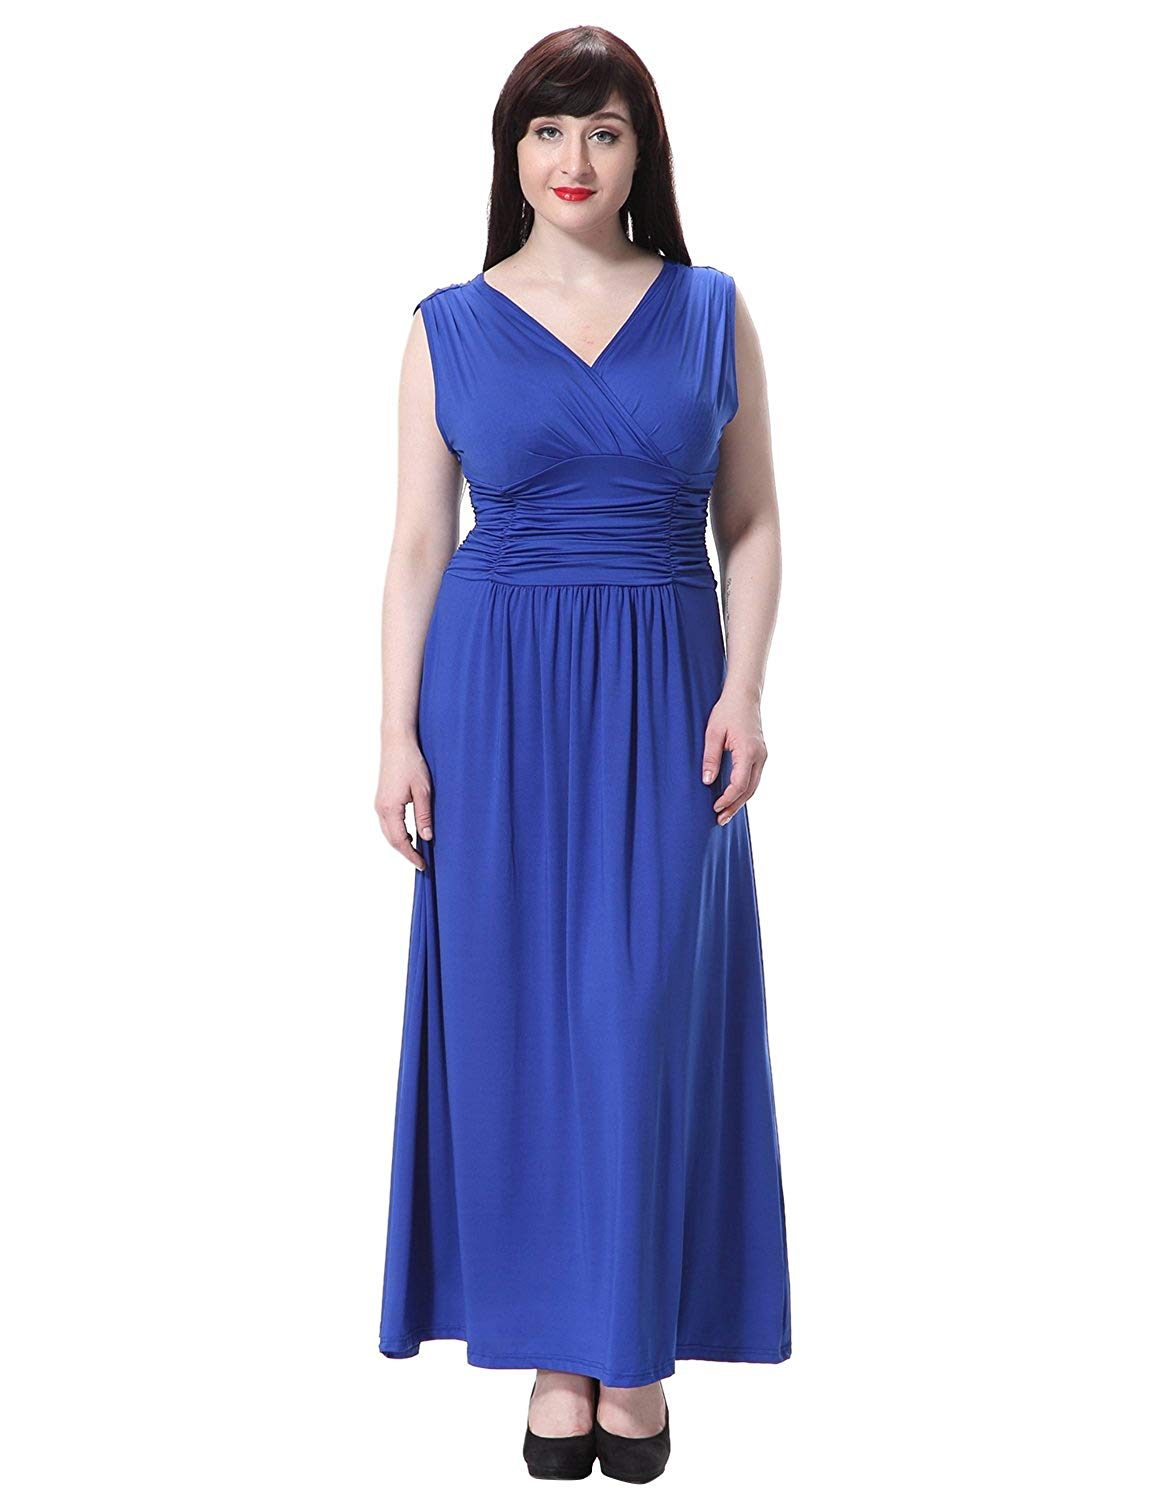 f2da3eed71a Get Quotations · Sue Joe Women s Maxi Dress Summer V-neck Ruched Empire  Waist Formal Plus Size Gown